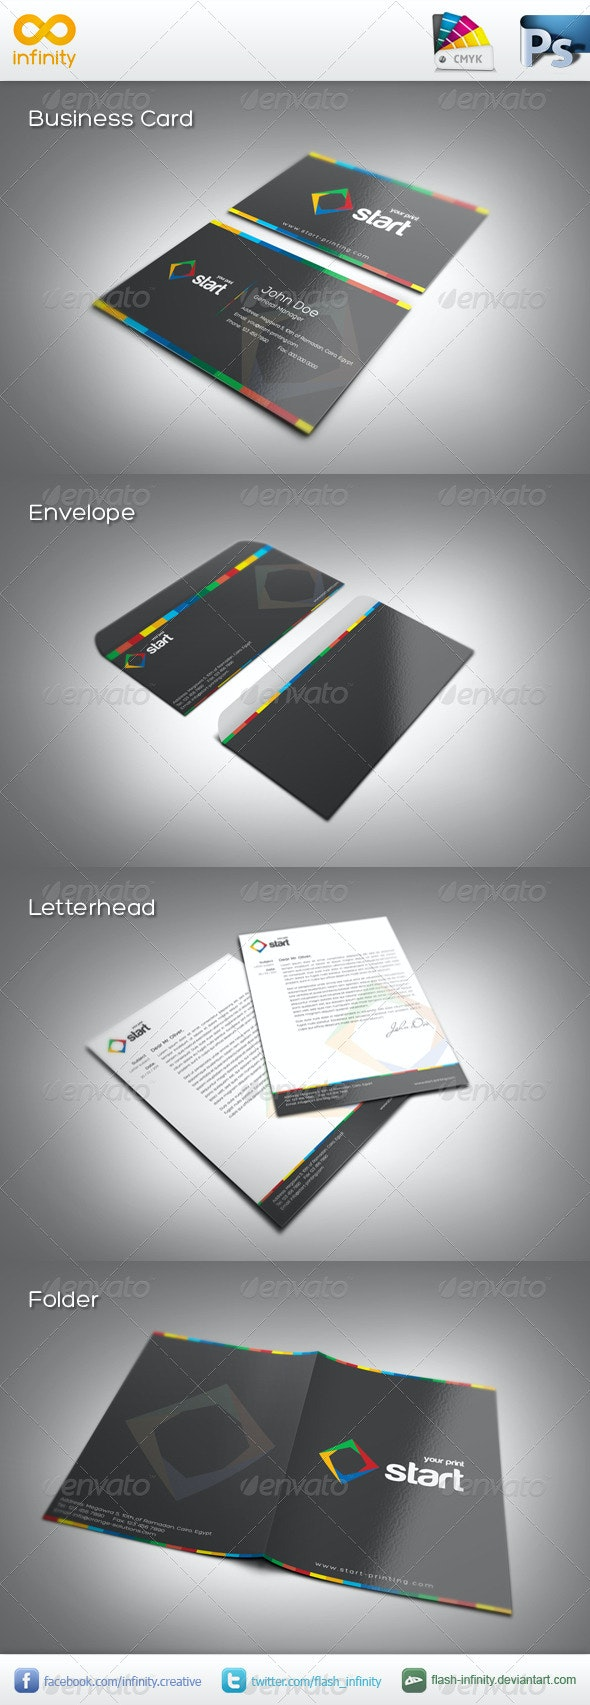 Start Corporate Identity - Stationery Print Templates